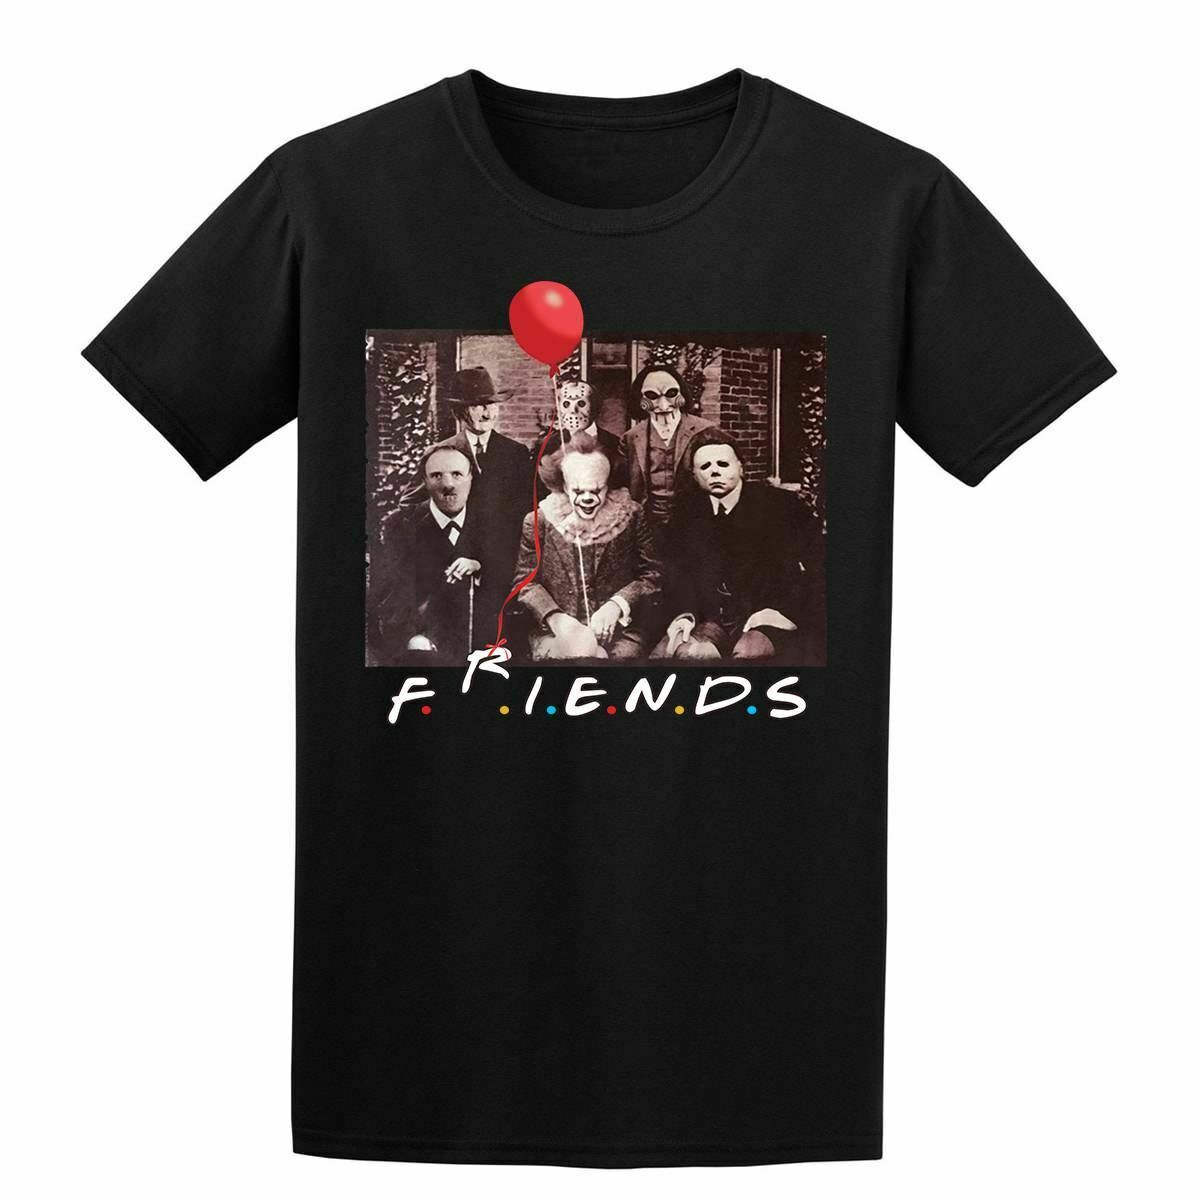 Horror Friends T Shirt Halloween <font><b>Pennywise</b></font> Jigsaw Film Movie Scary Men T Shirt Men Women Unisex Fashion <font><b>tshirt</b></font> Free Shipping image